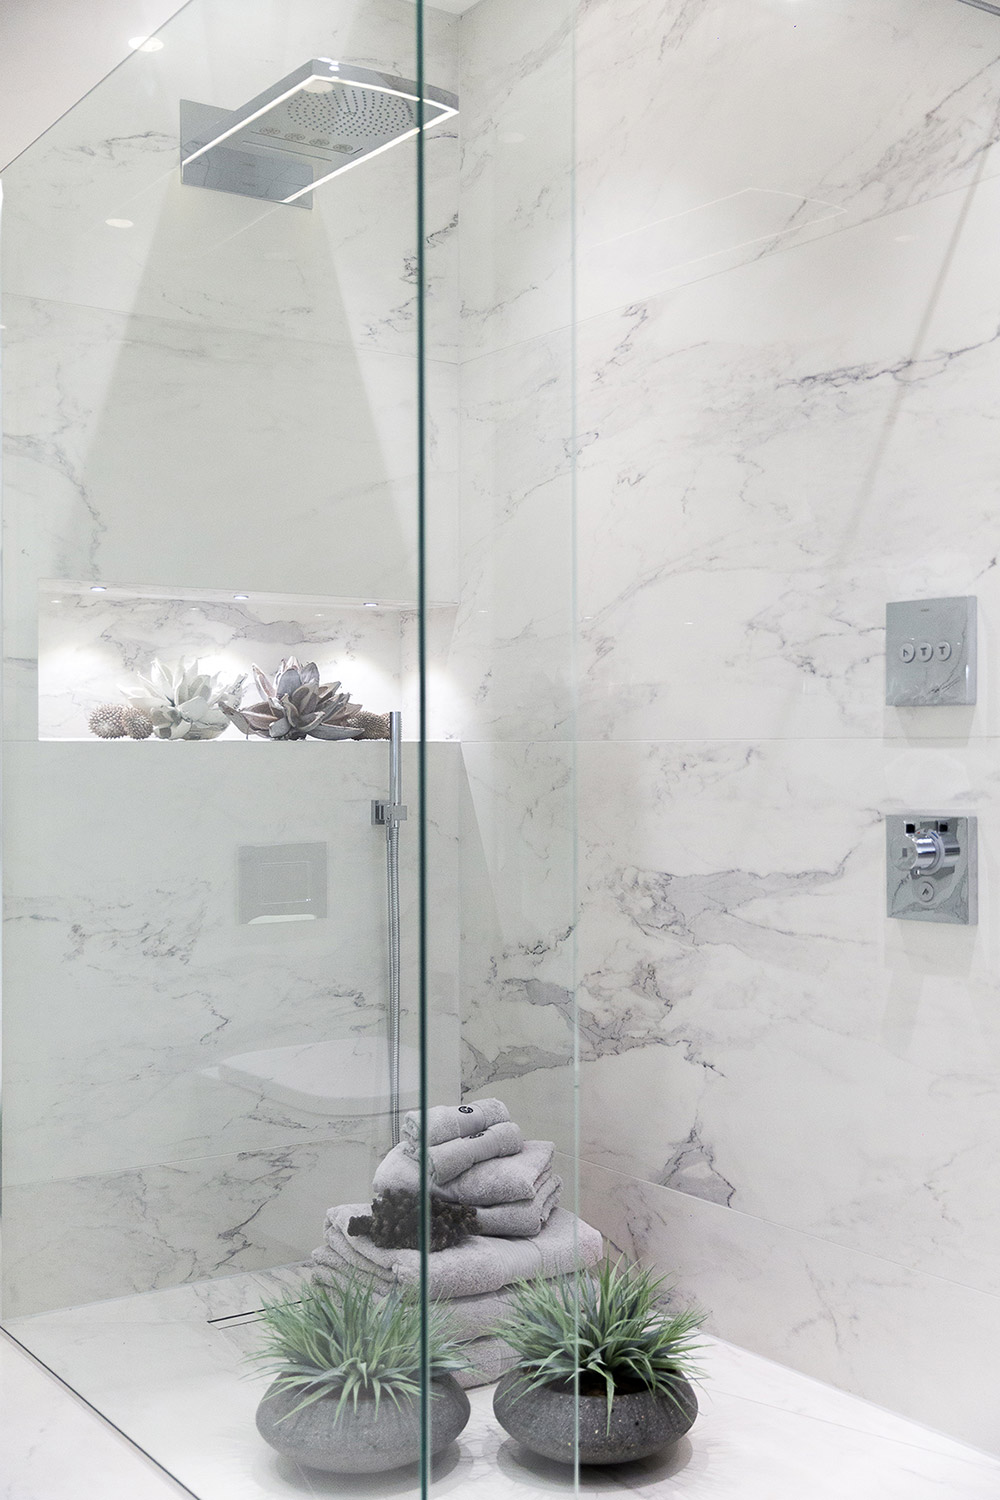 Luxury Bathroom - Shower : Hadley Wood, London